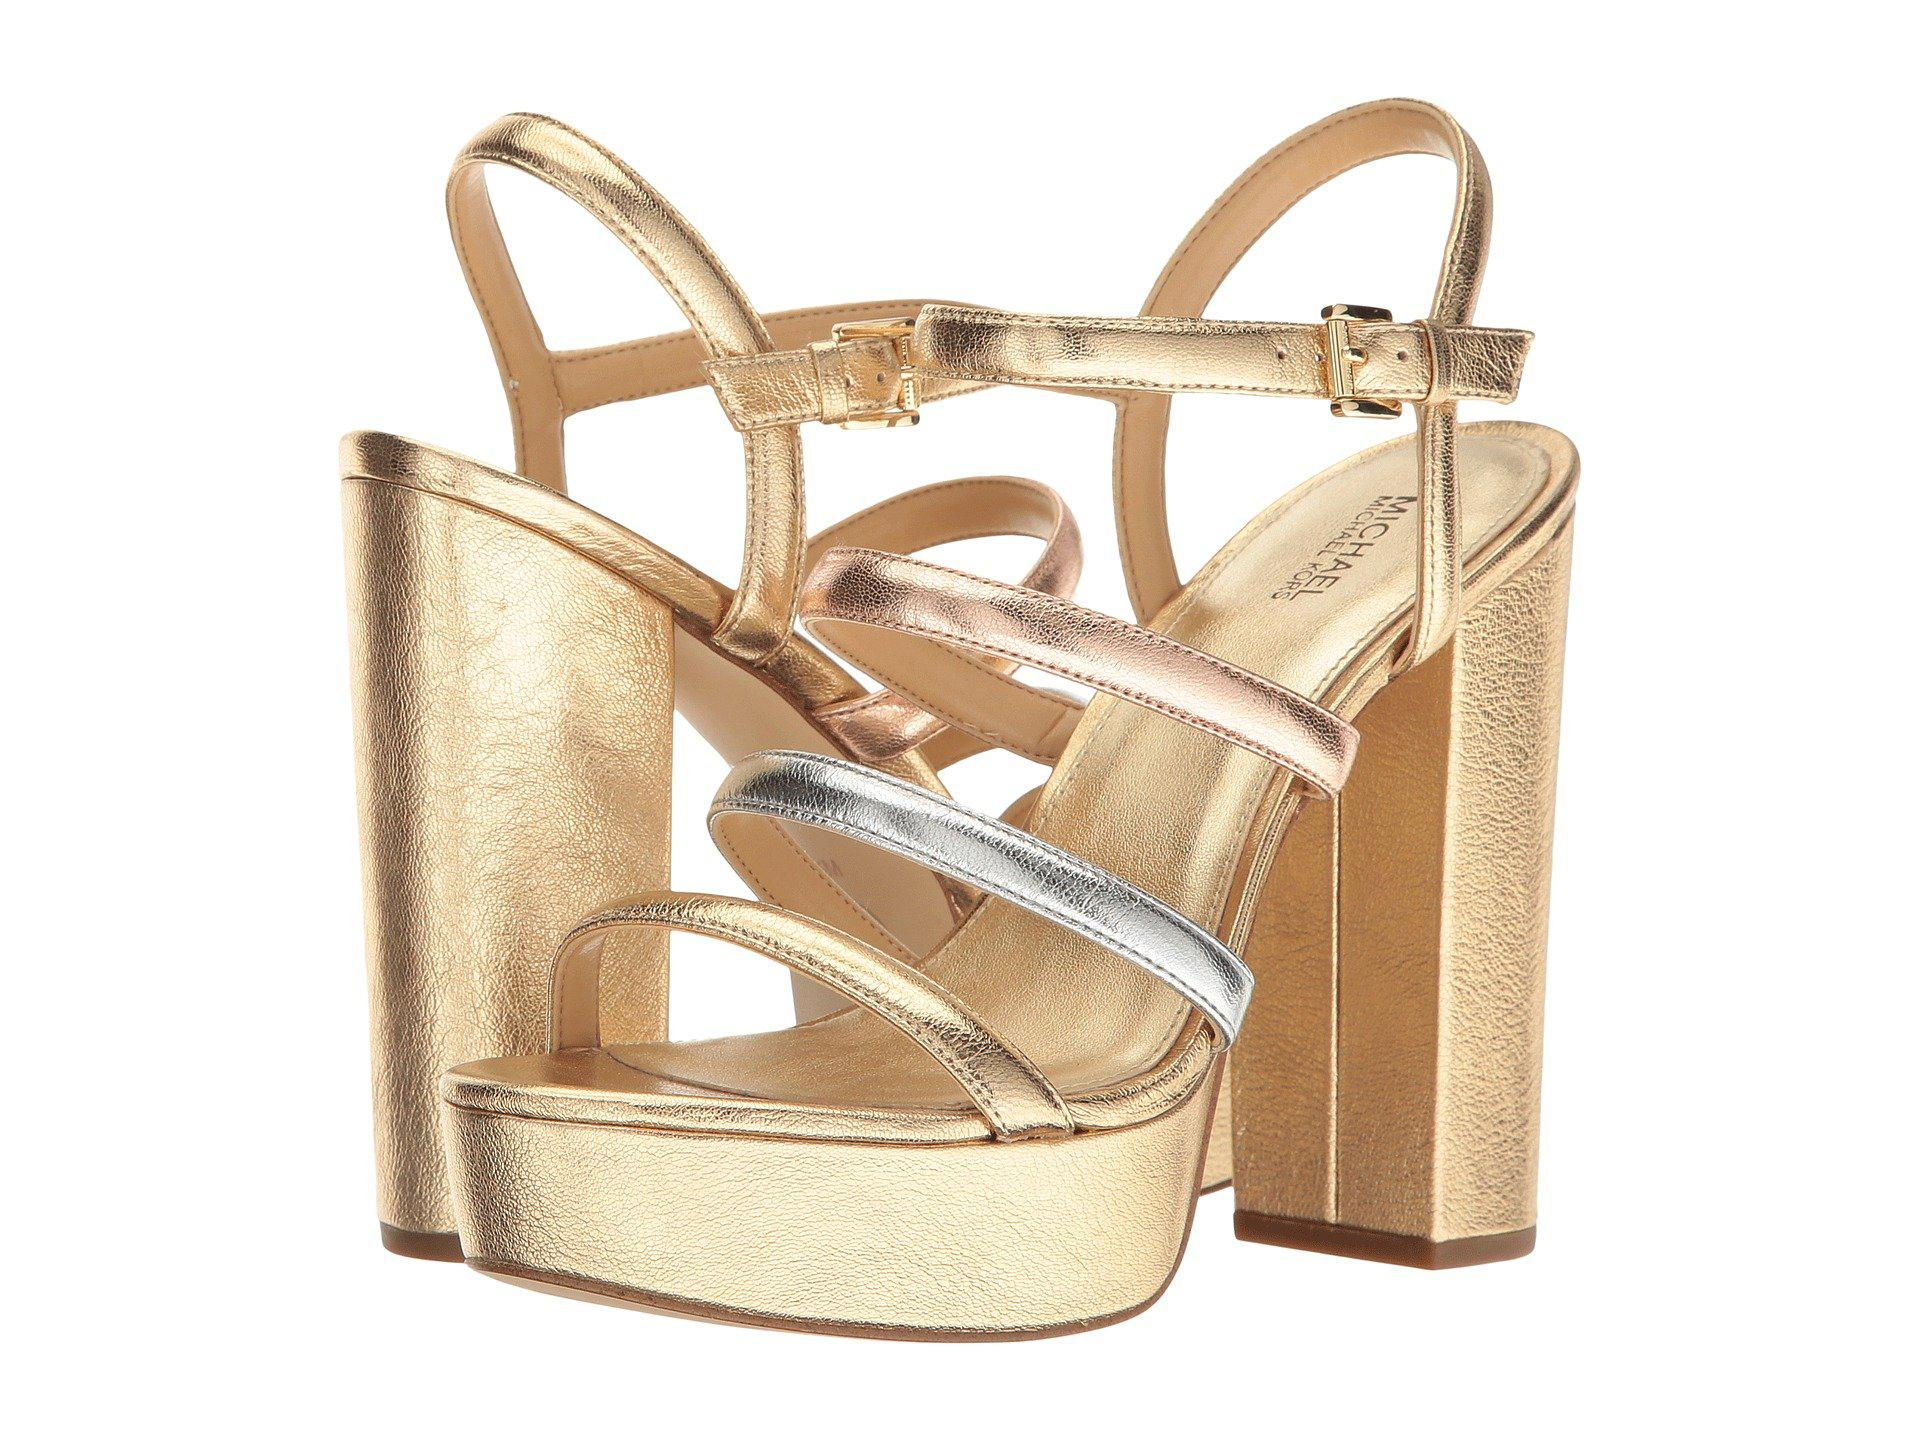 762df091c89 Lyst - MICHAEL Michael Kors Nantucket Platform in Metallic